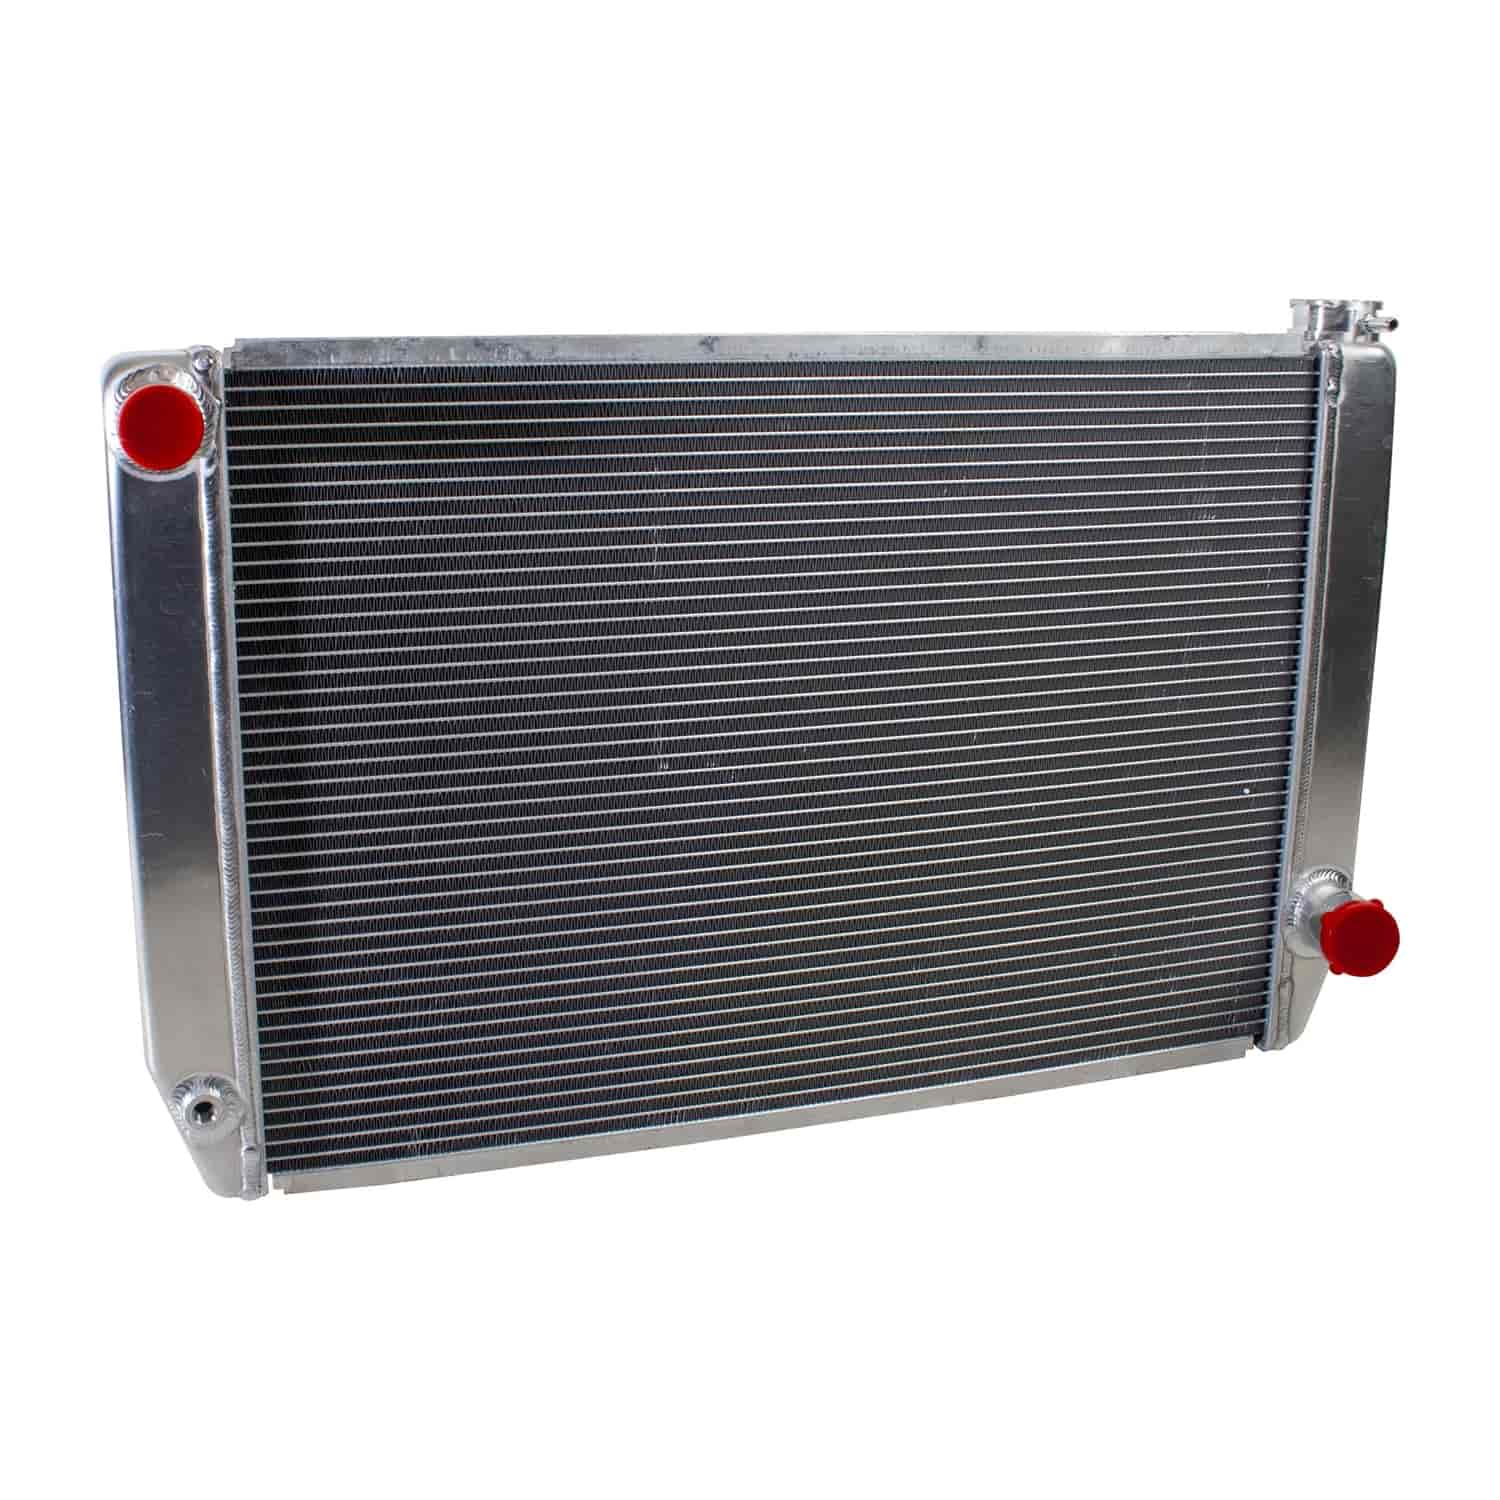 Griffin Radiators 1-55272-X